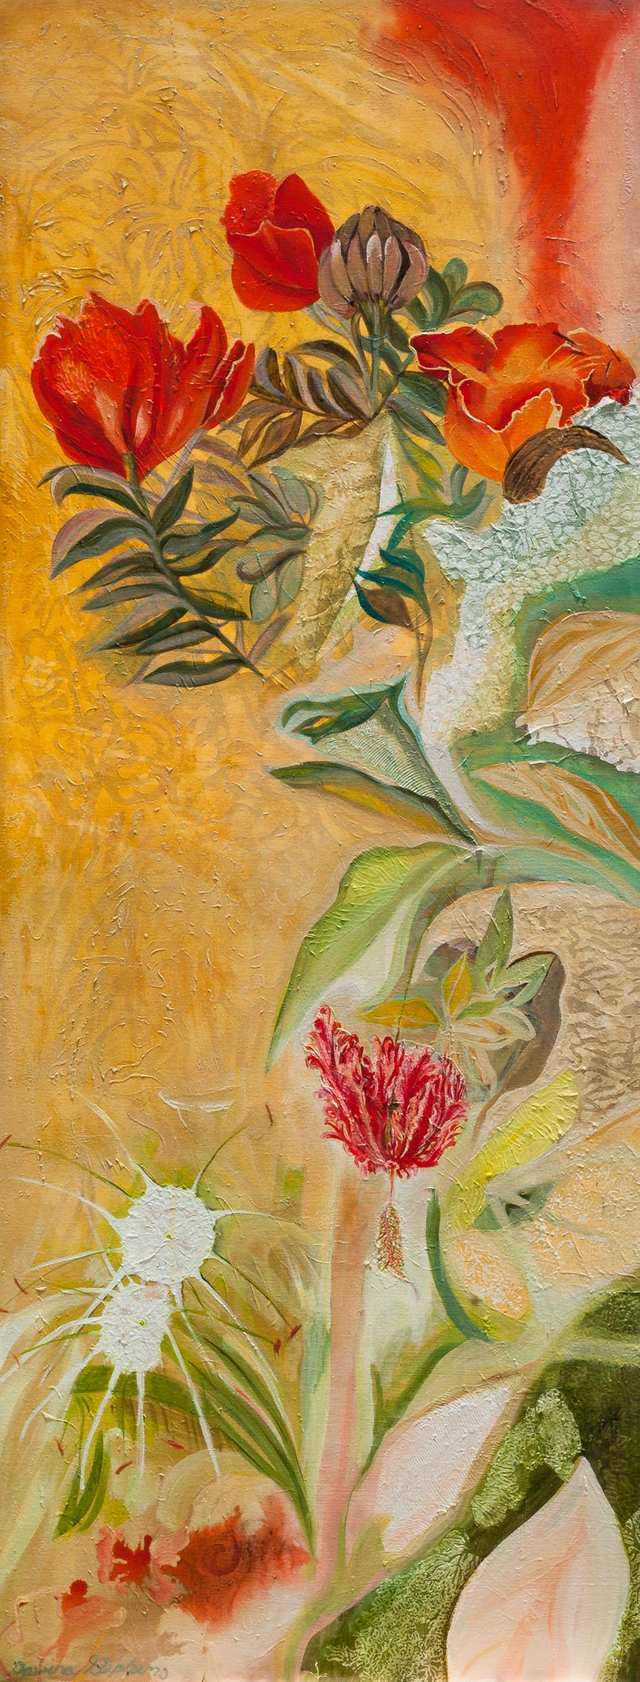 Nandi Flame, Beach Spider Lily And Hibiscus Flowers, woodblock acrylic on canvas